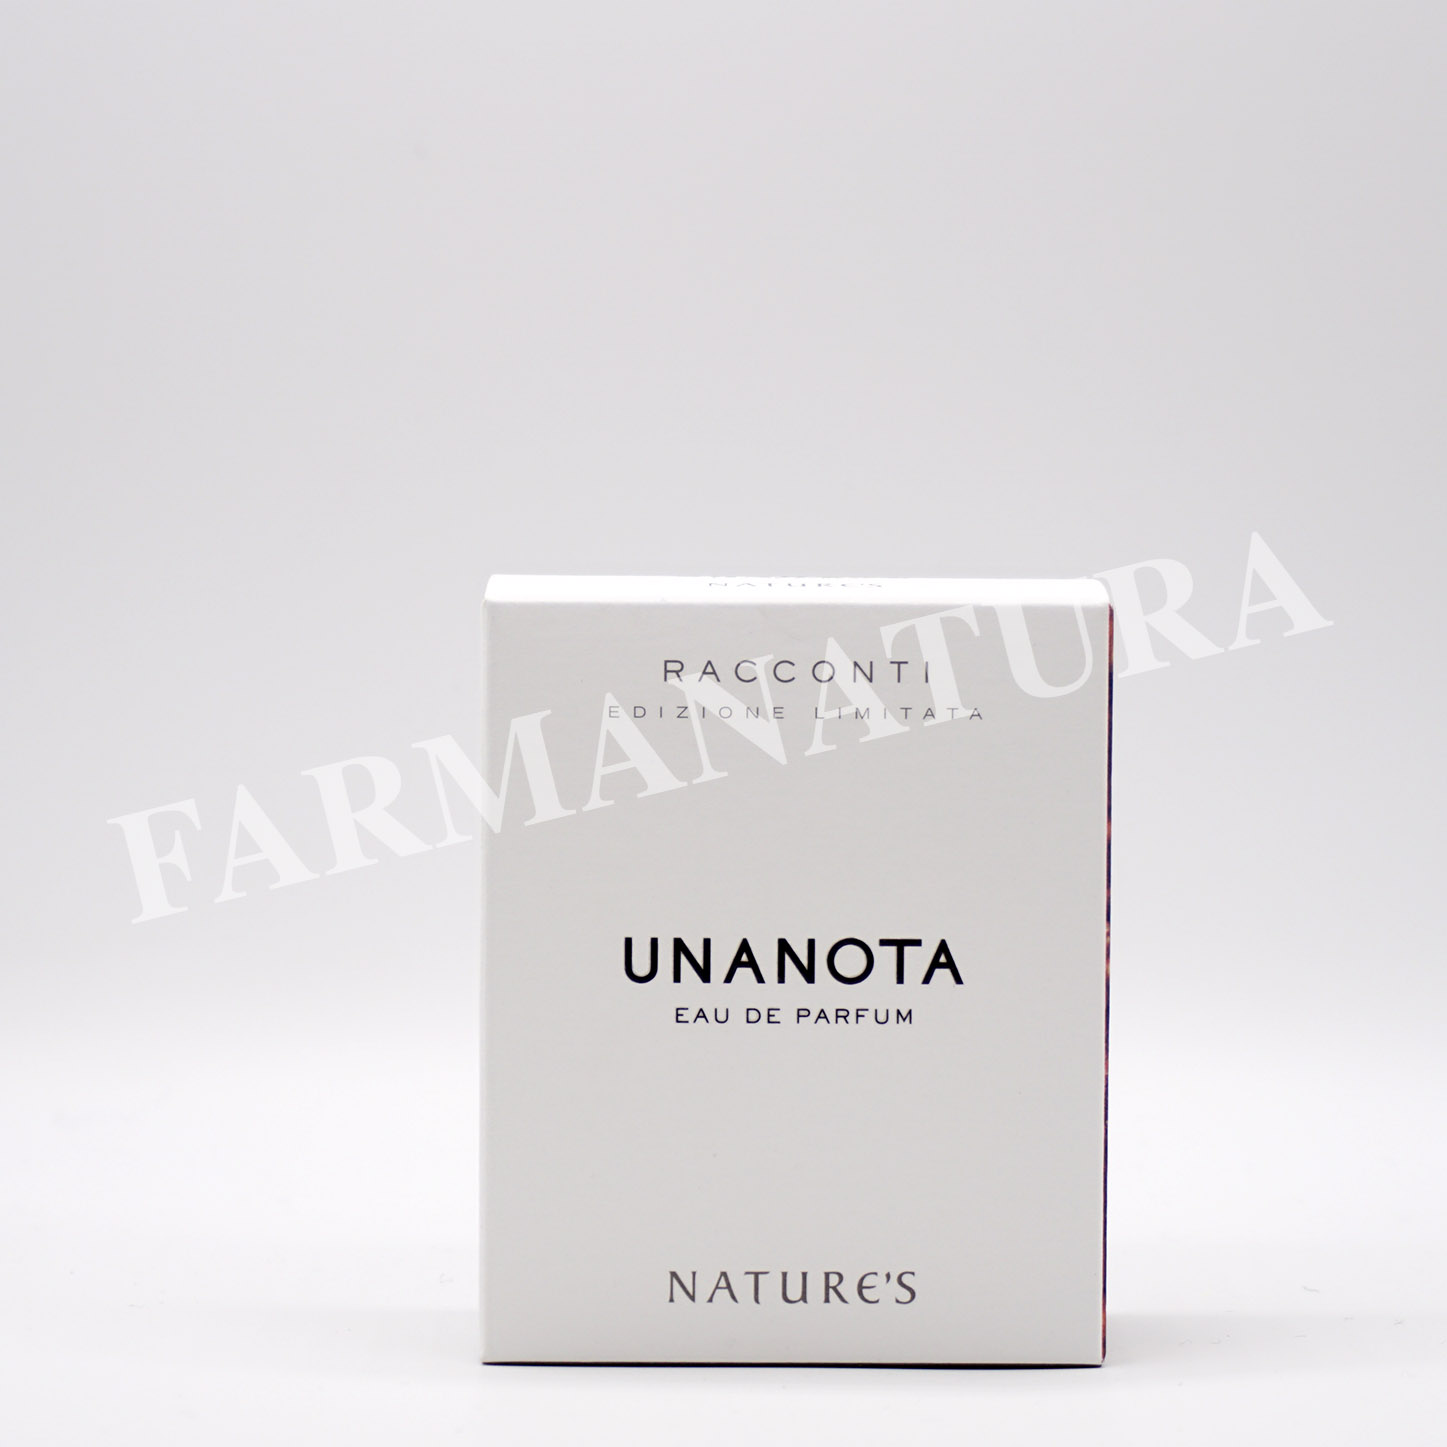 Racconti Unanota Edp 30Ml Nature'S